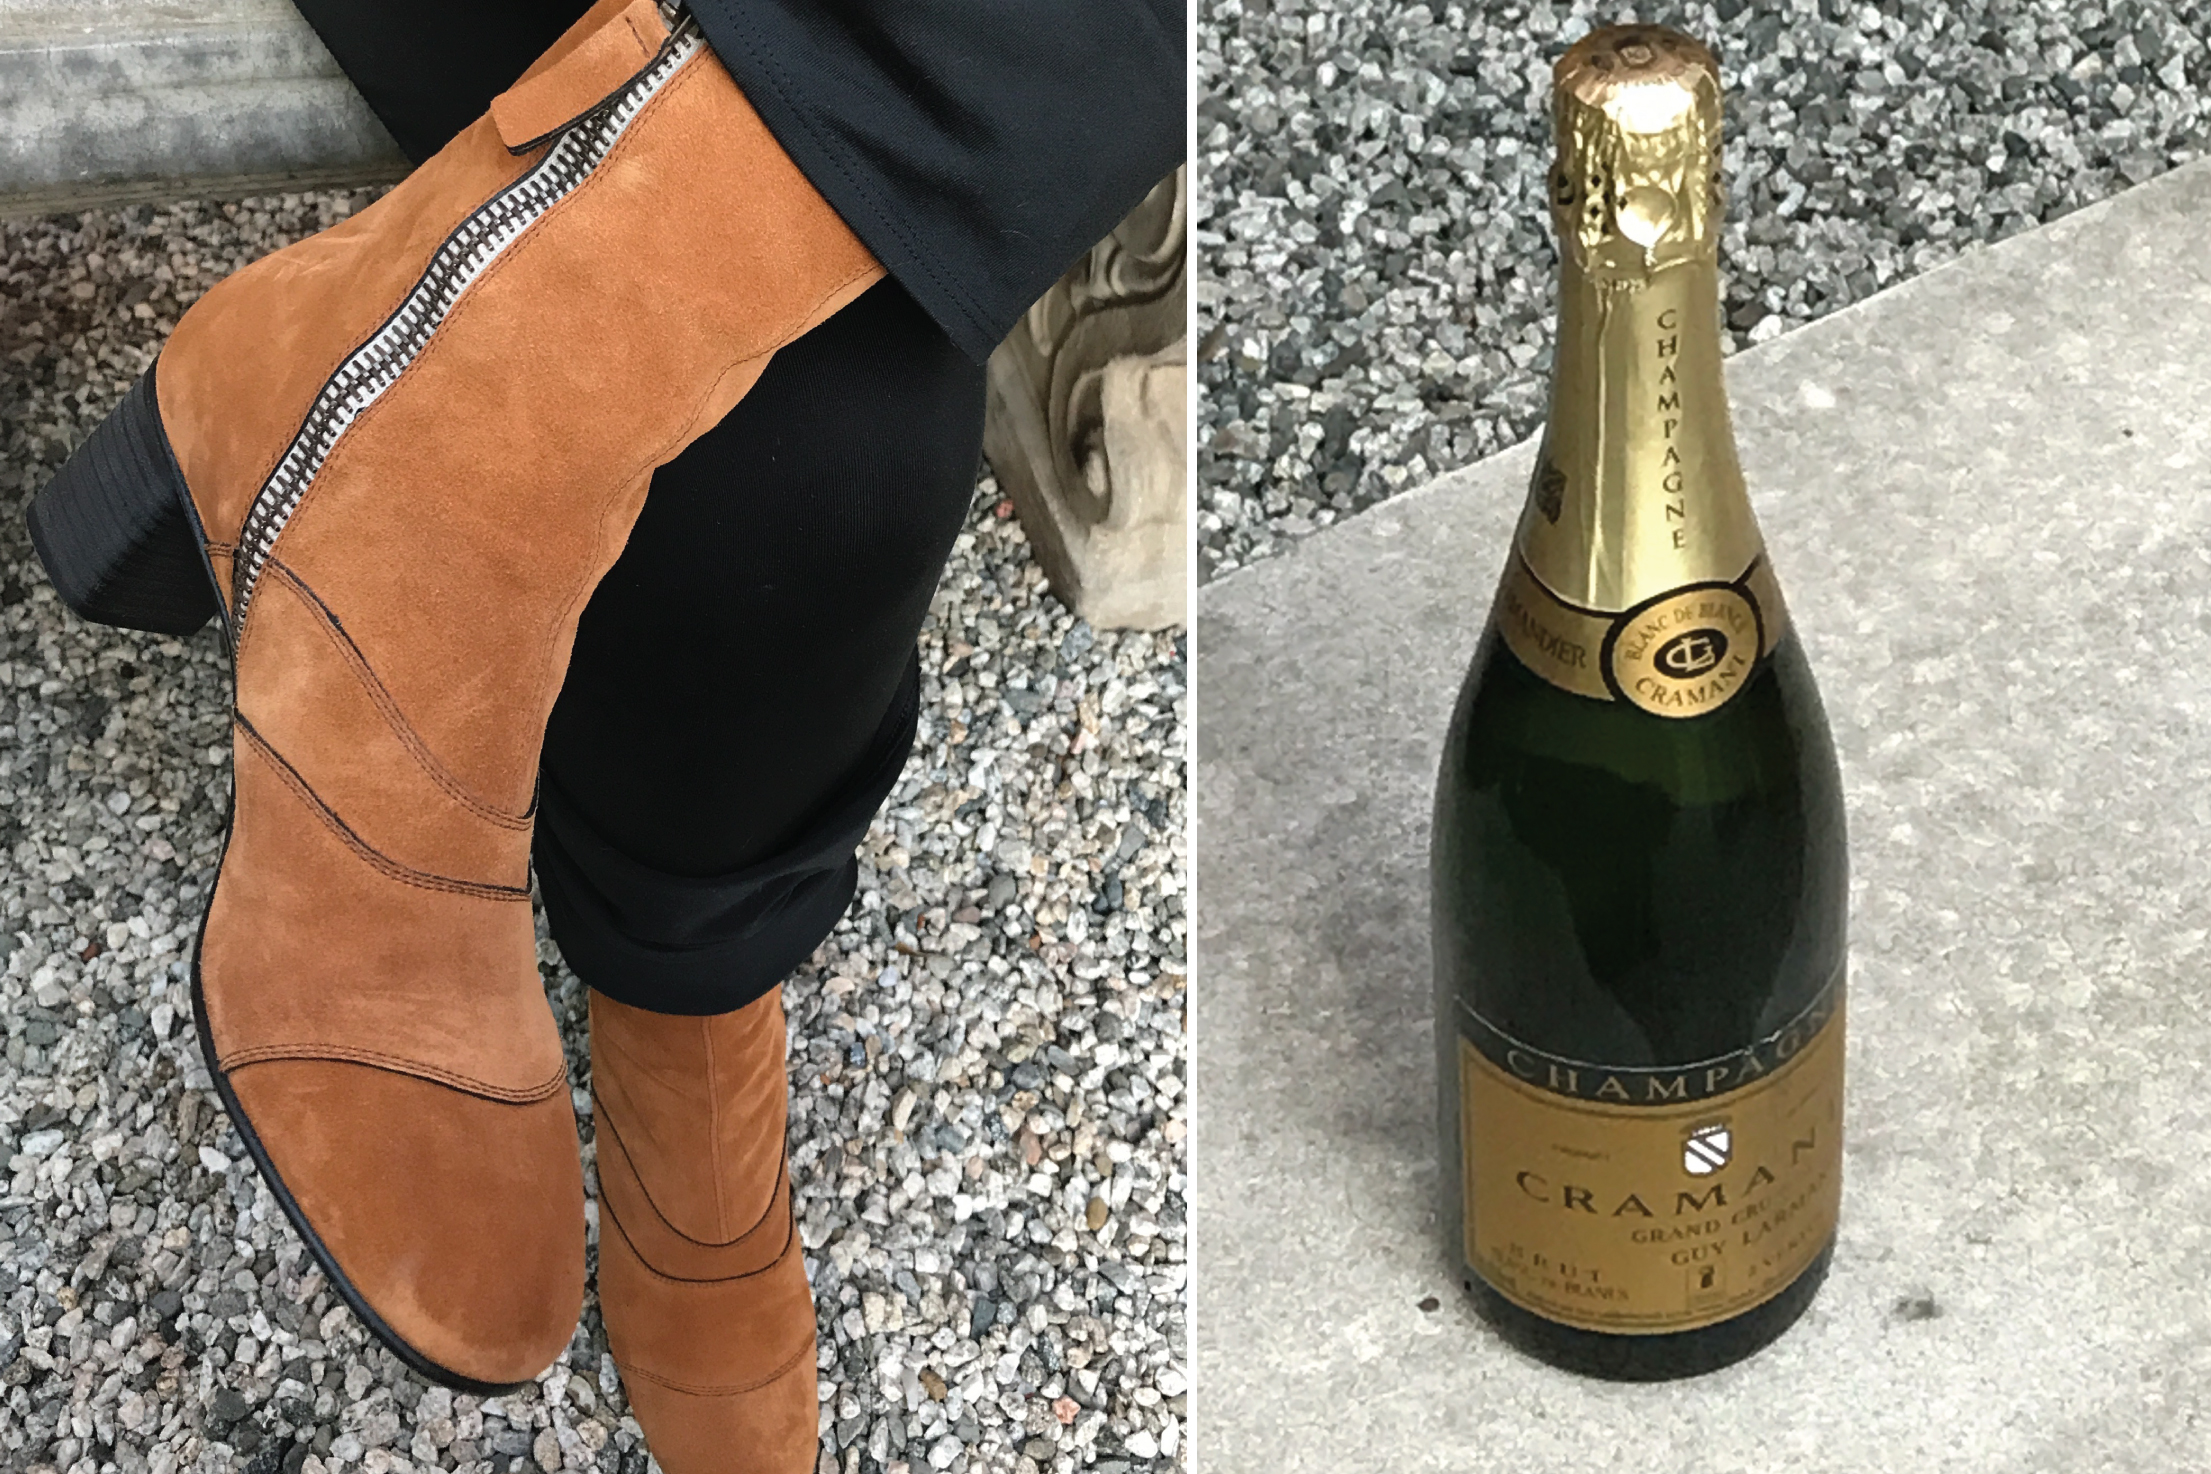 Chloe Boots and Guy Larmandier Cramant Champagne! Life is good!